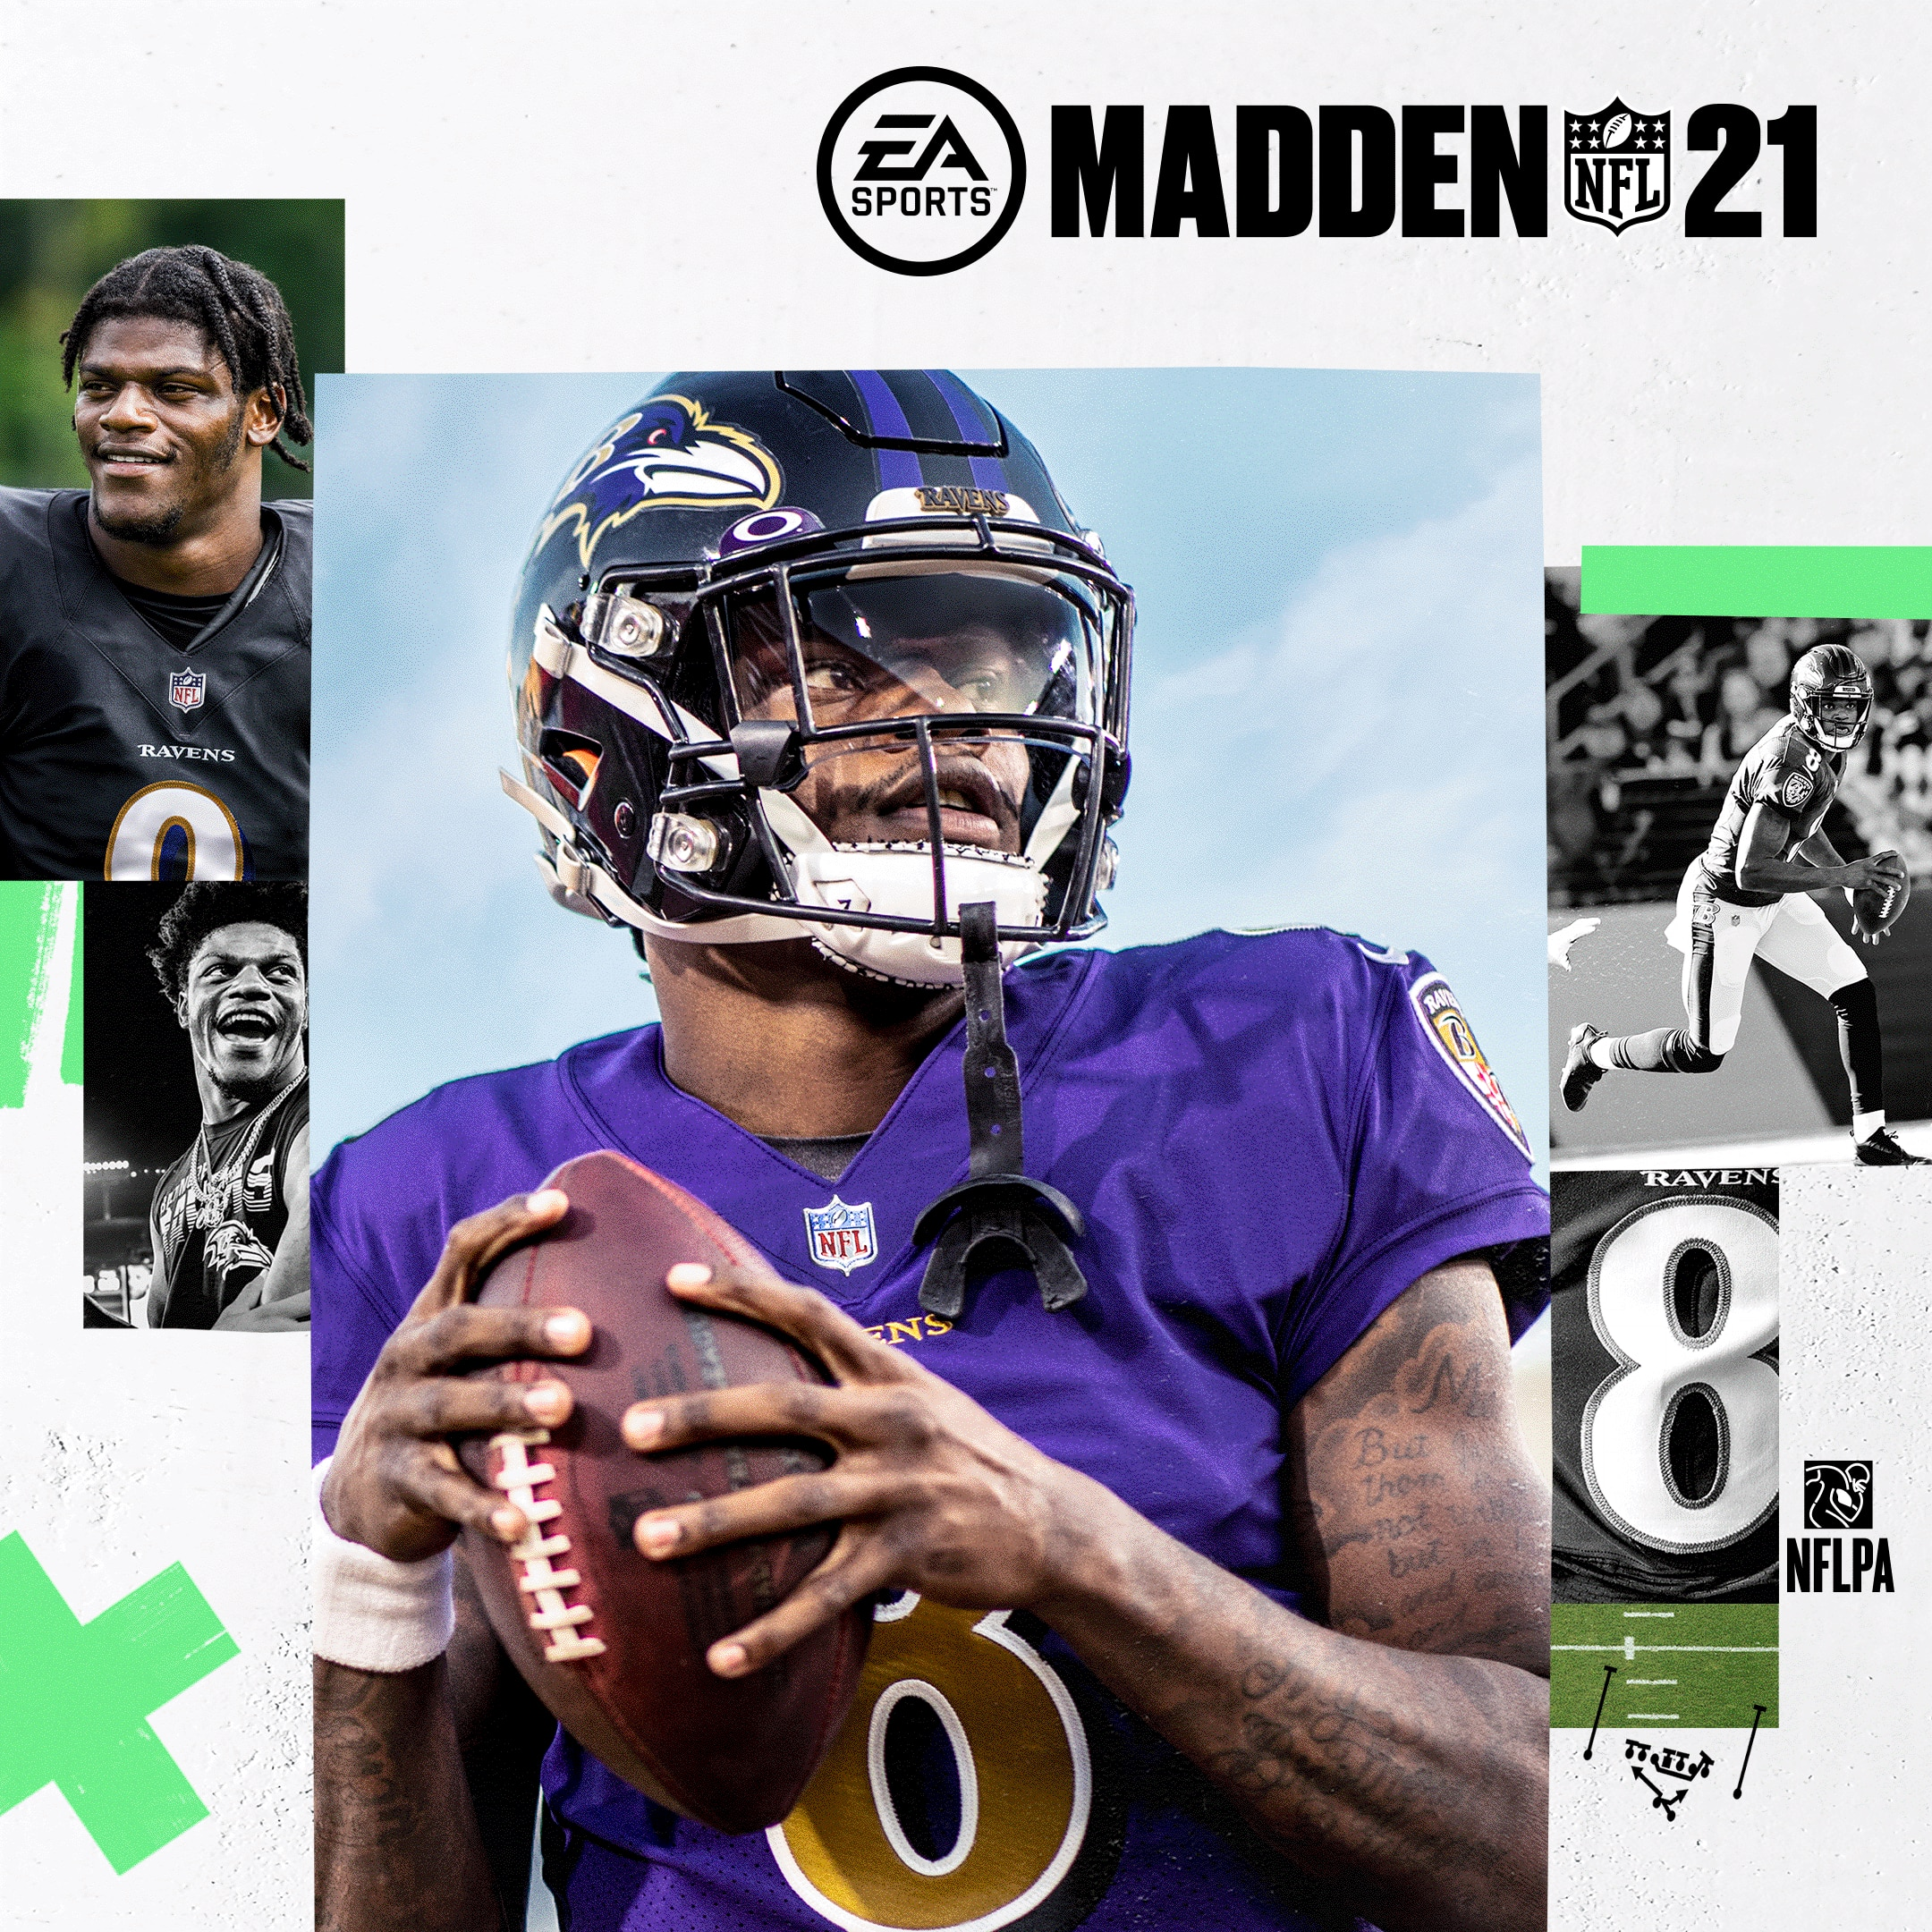 WM_GMA_Madden NFL 21 Add-ons